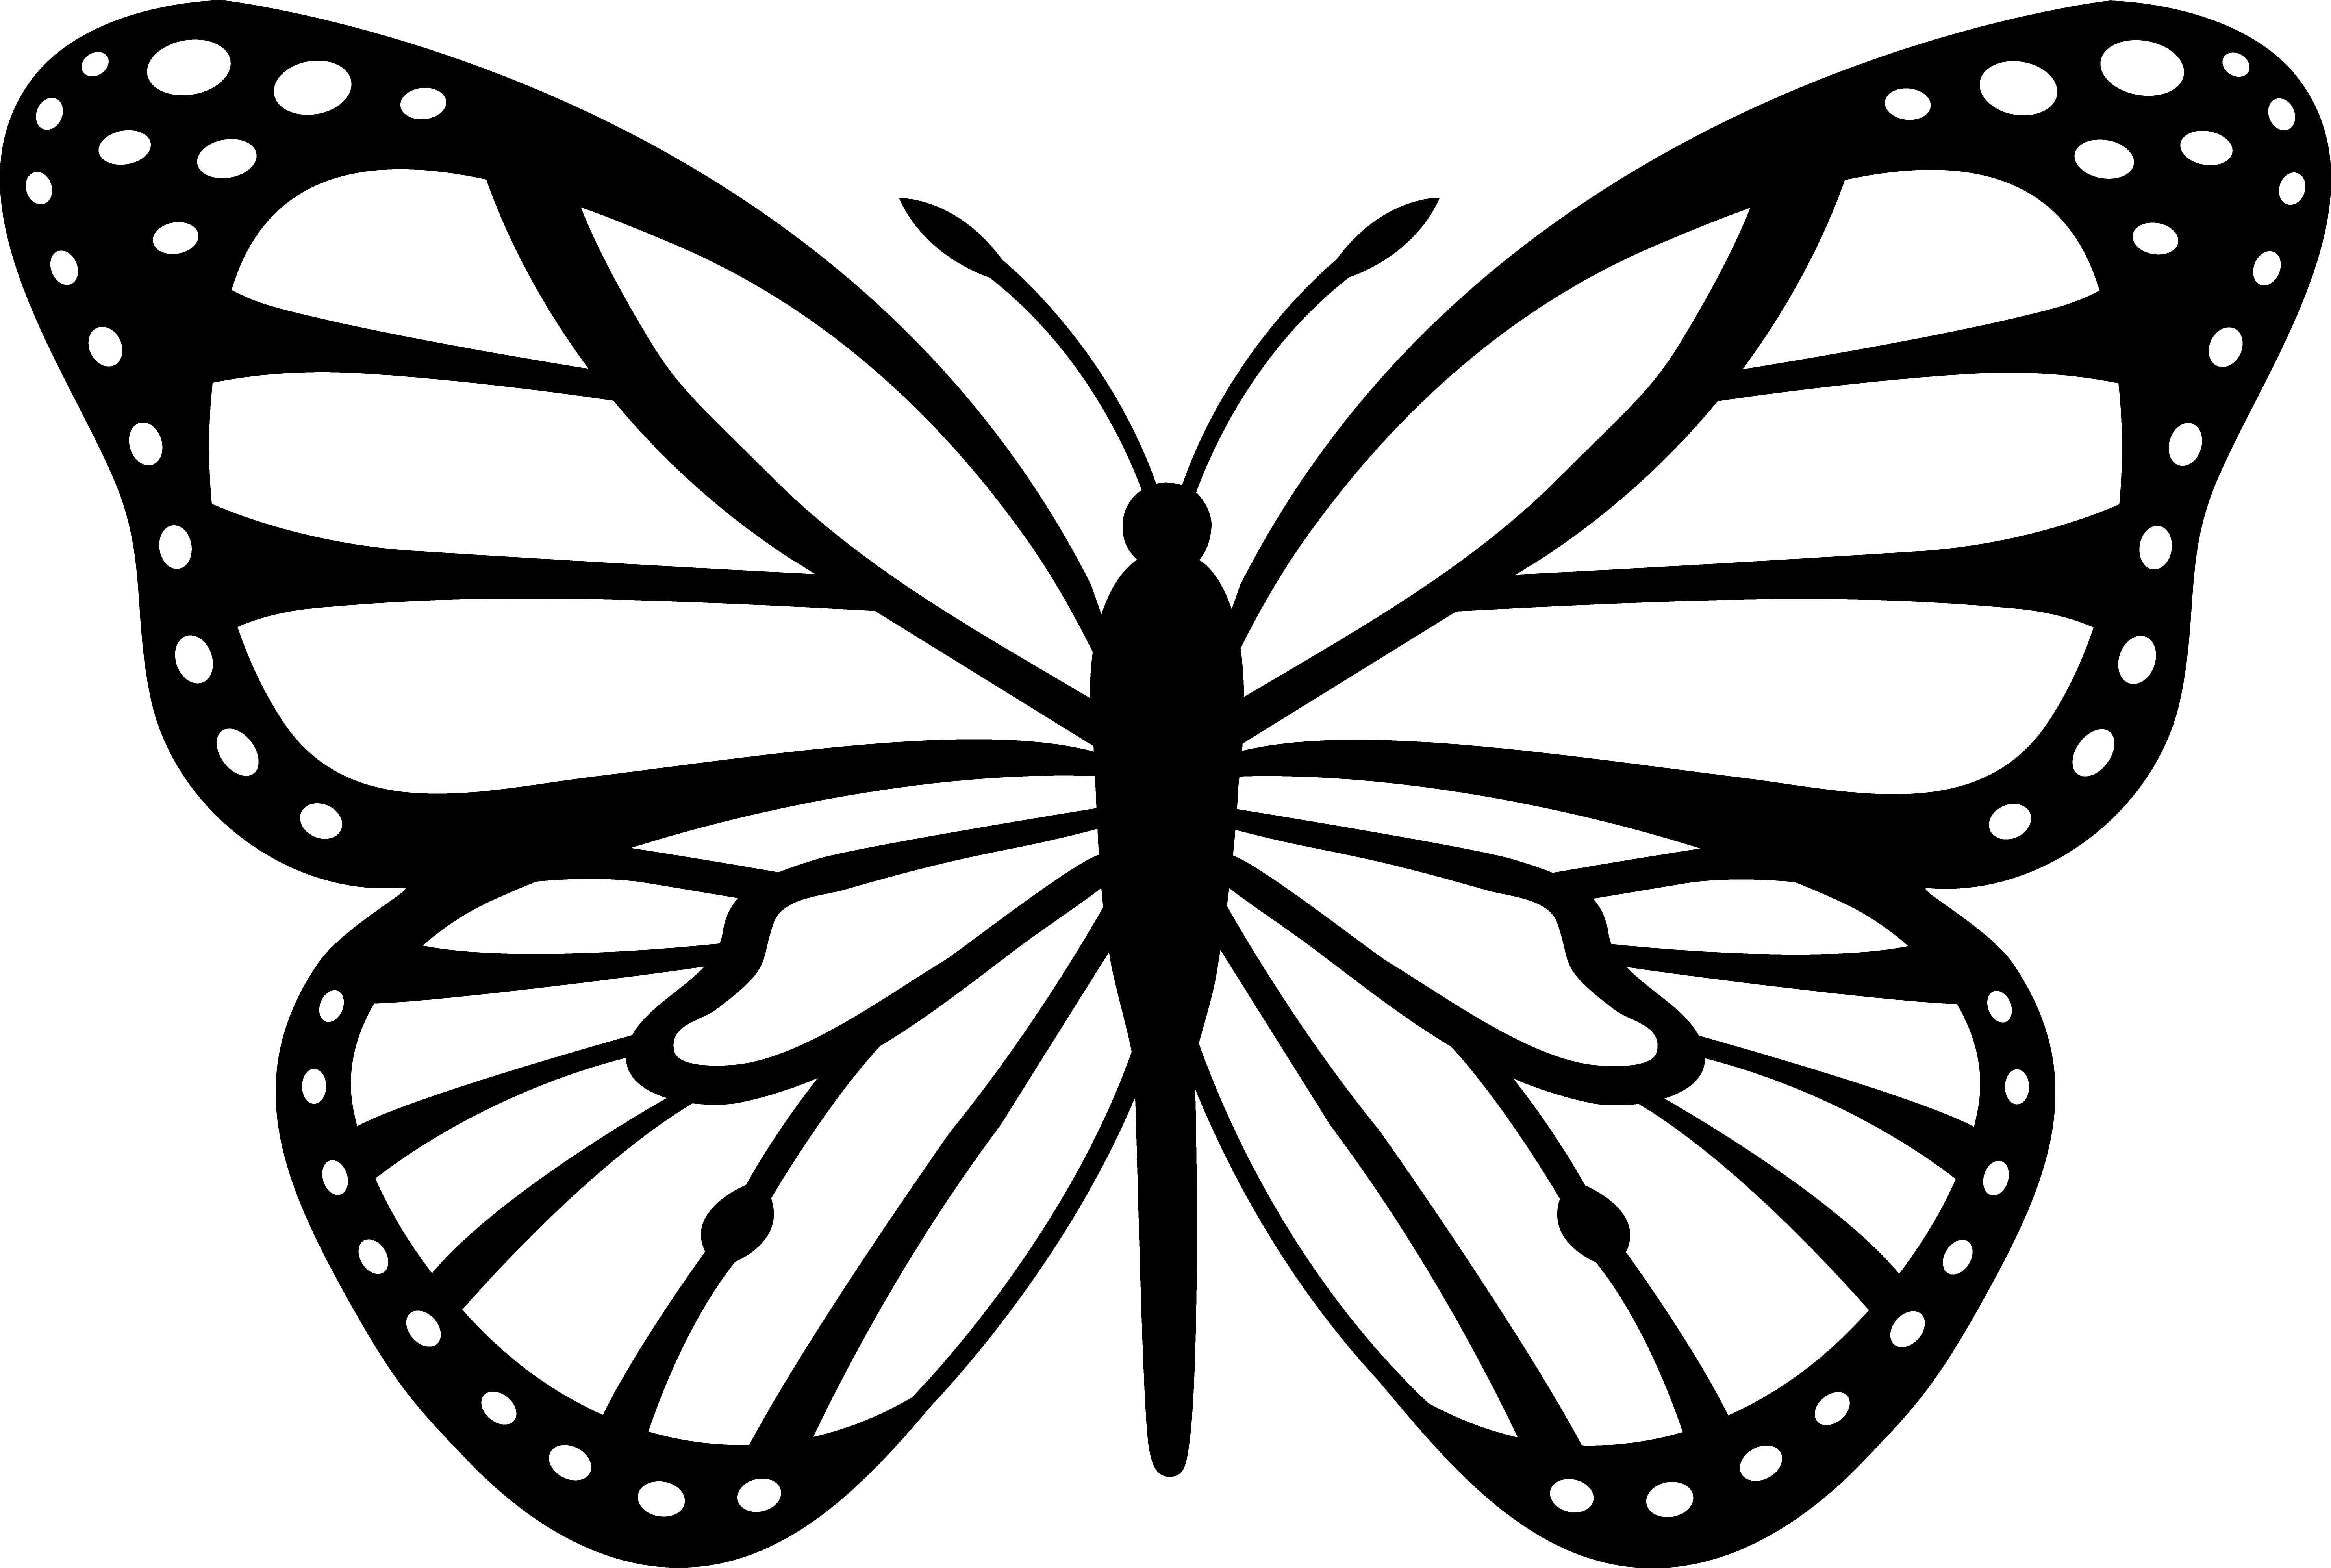 Free Butterfly Clipart U0026middot; Whit-free butterfly clipart u0026middot; white clipart-9